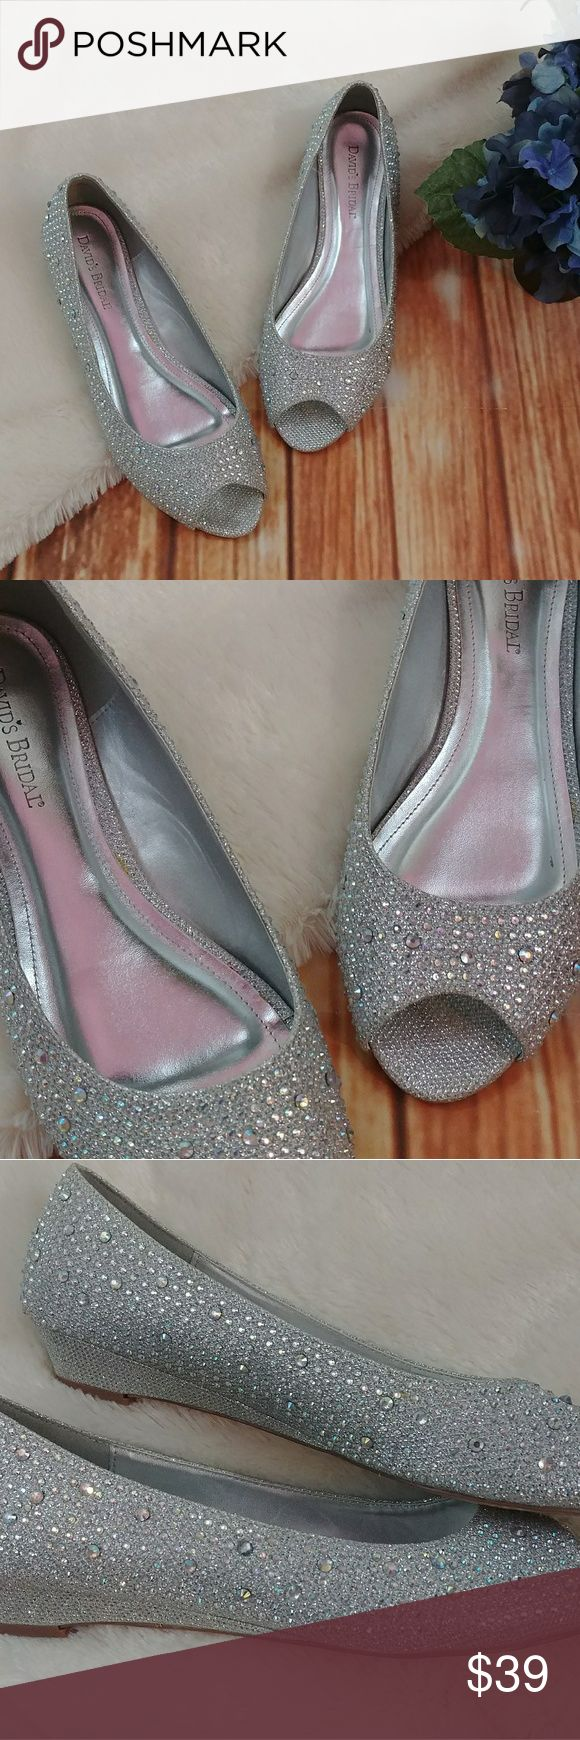 "David's Bridal Low Wedge Peep-Toe with Crystals Add a little sparkle and shine to your ensemble with these low, peep-toe wedges, adorned with iridescent crystals.   -Synthetic -Wedge height: 1"" -Like new condition, soles a little dirty from being tried on but never worn outside. David's Bridal Shoes Wedges"